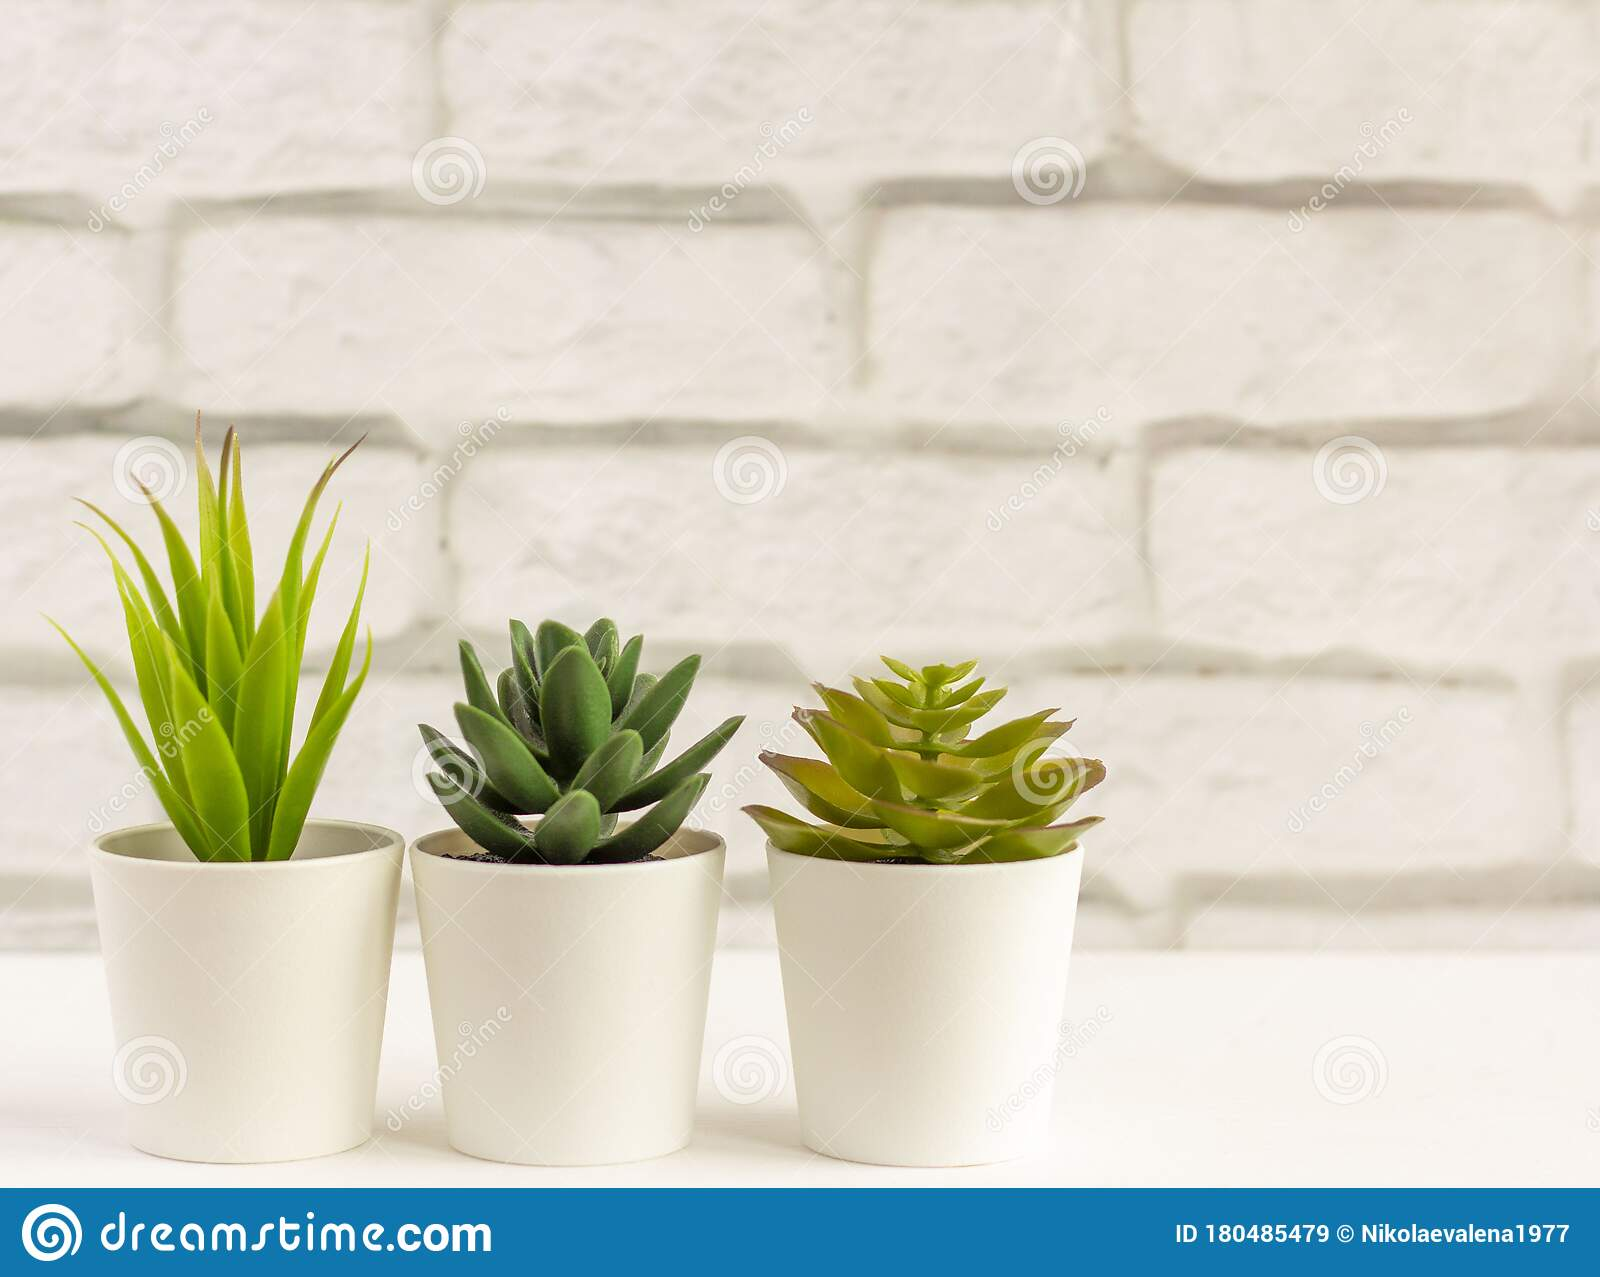 Indoor Plants Various Succulents In Pots Succulents In White Mini Pots Ideas For Home Decoration Copy Space Stock Image Image Of Flower Design 180485479